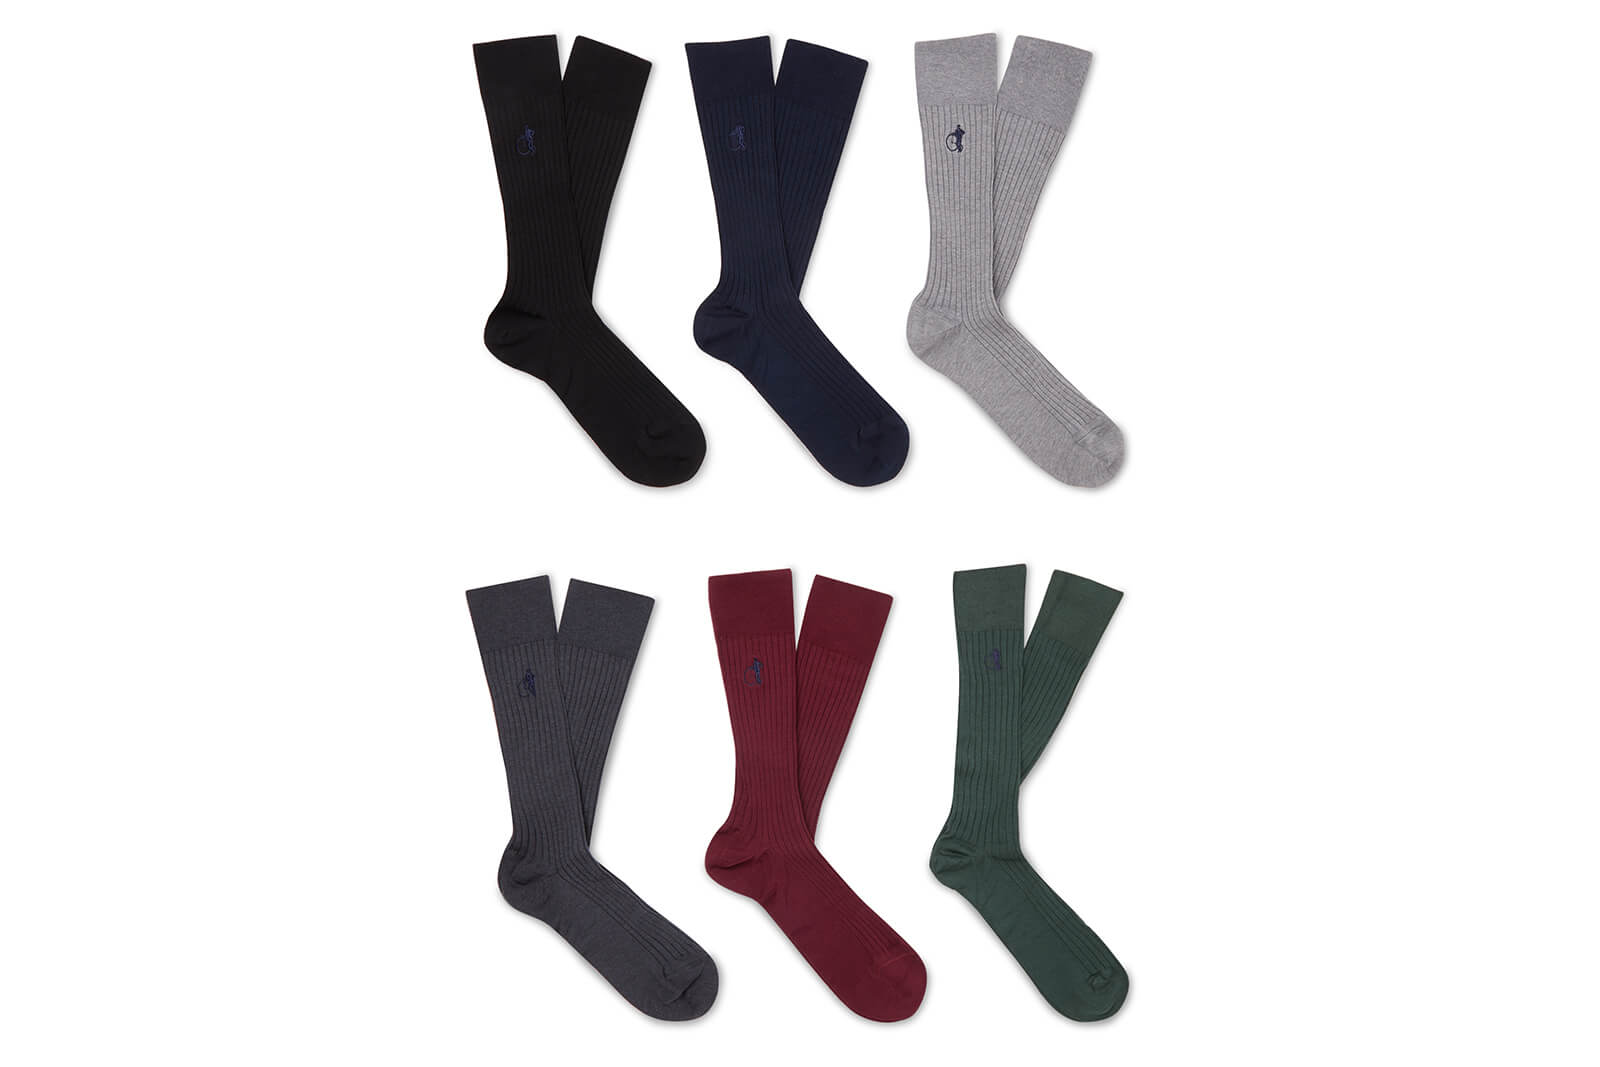 London Sock Co 6 pack